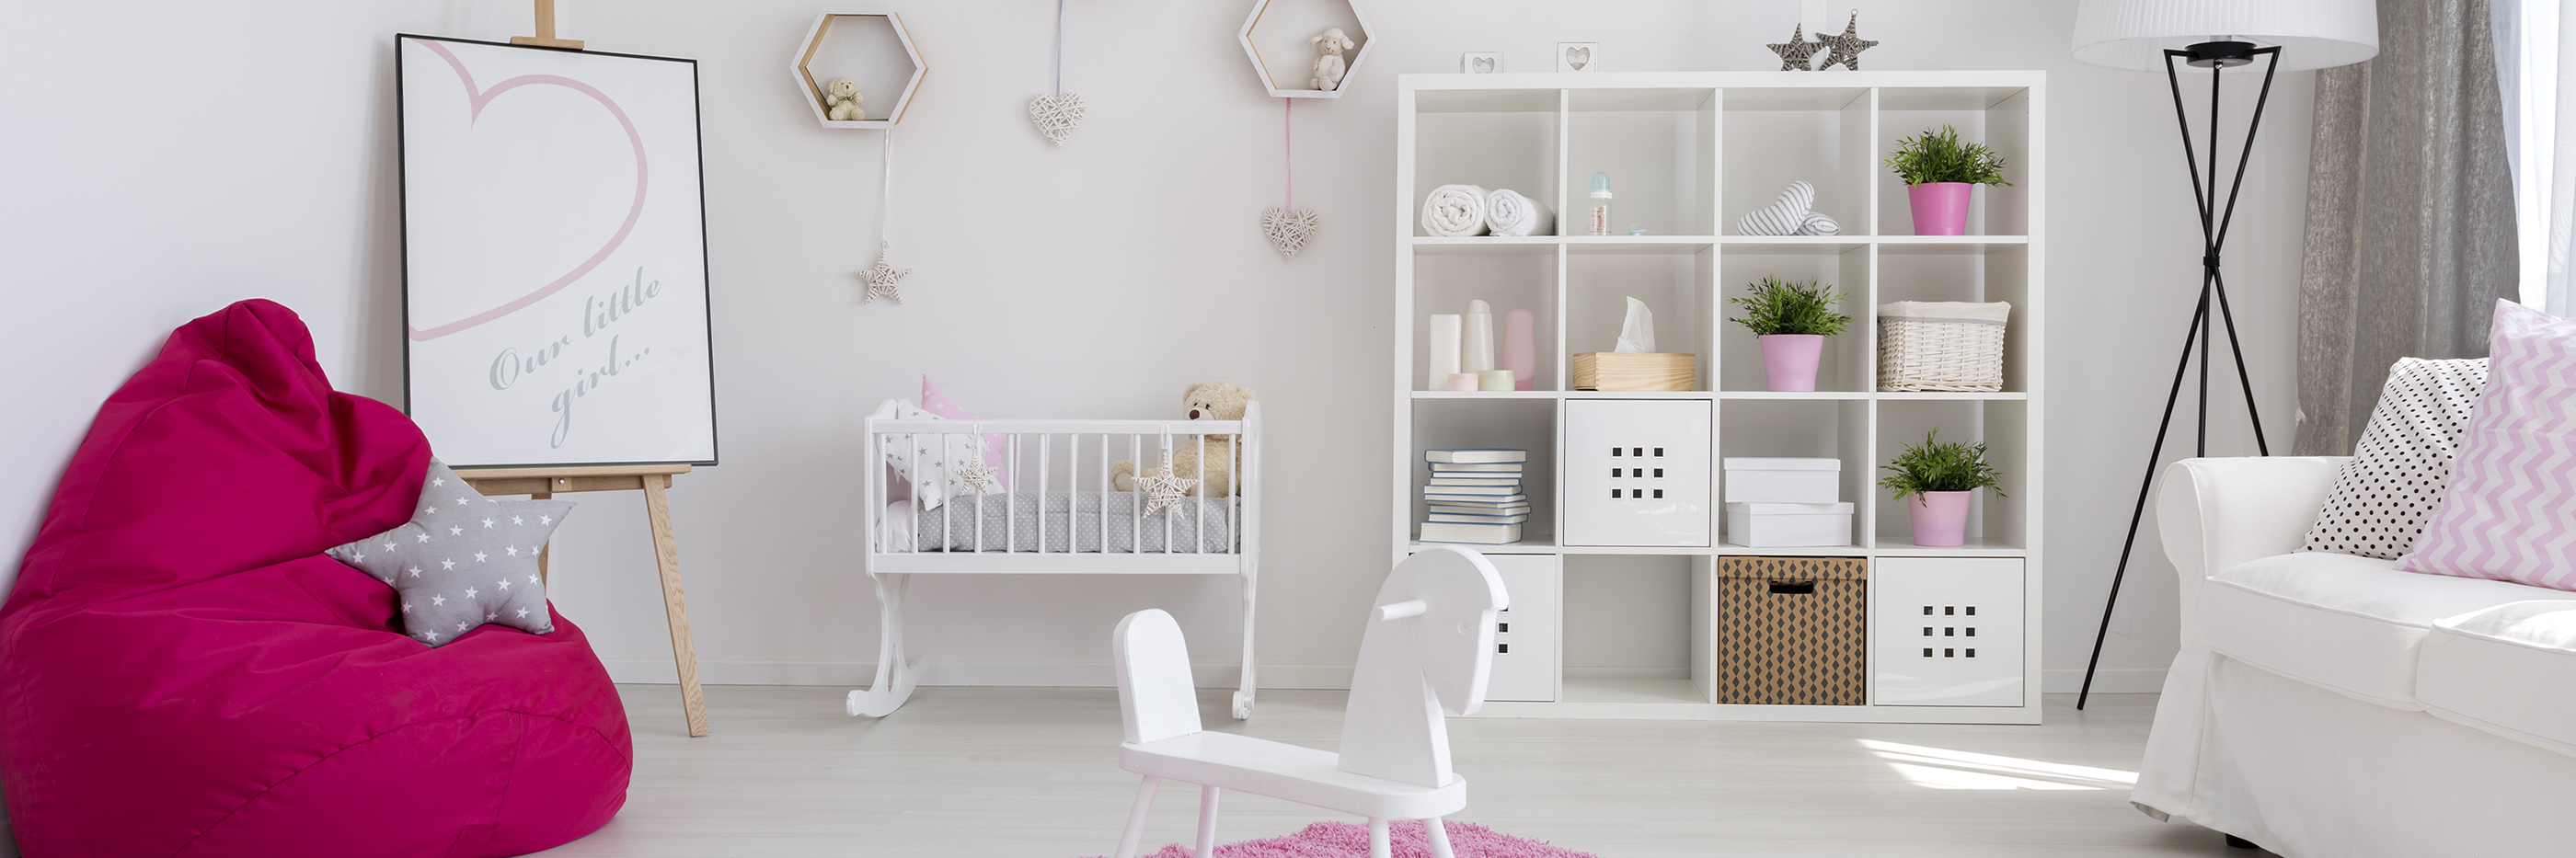 Room crib shelf with floor lamp 54360